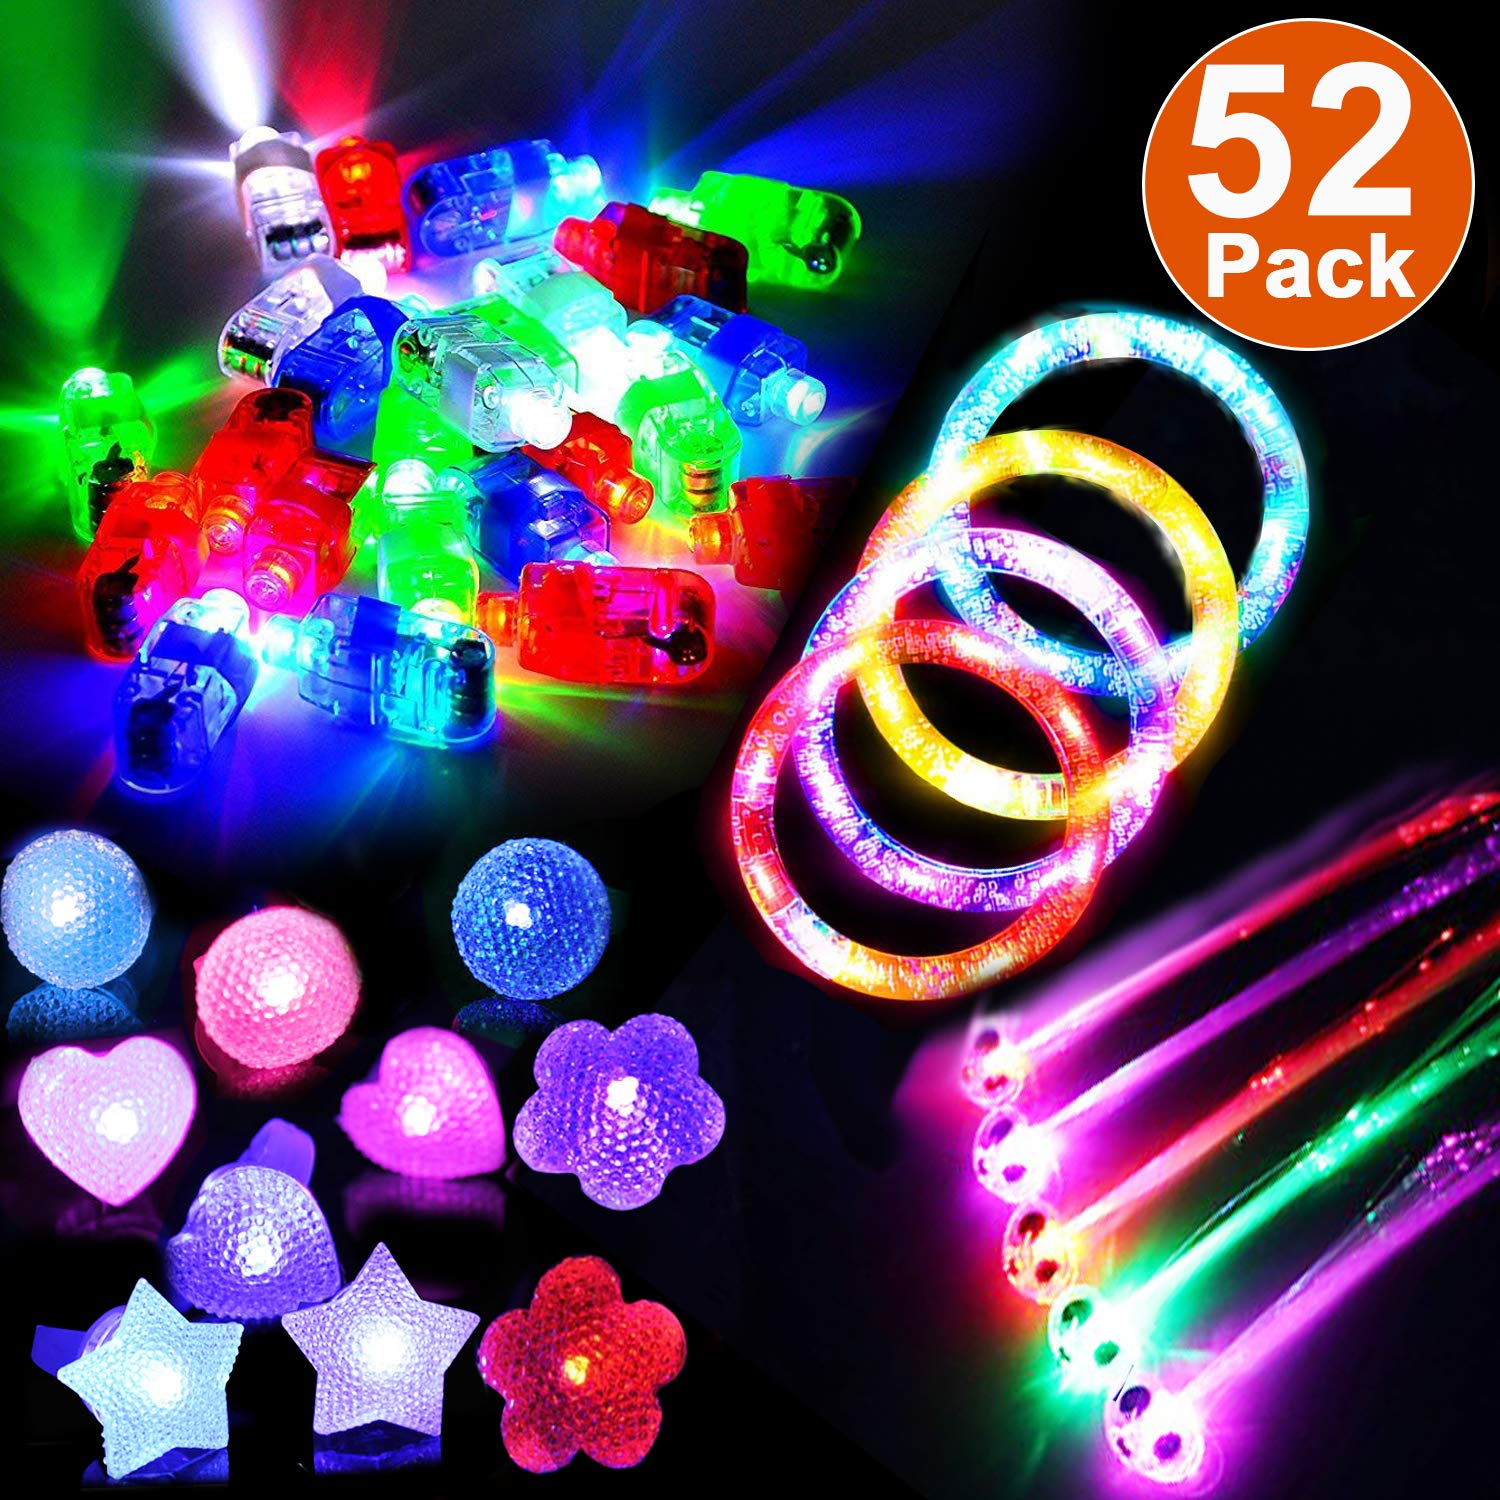 Amazoncom 52 Pack Halloween Light Up Toys For Kids Adult